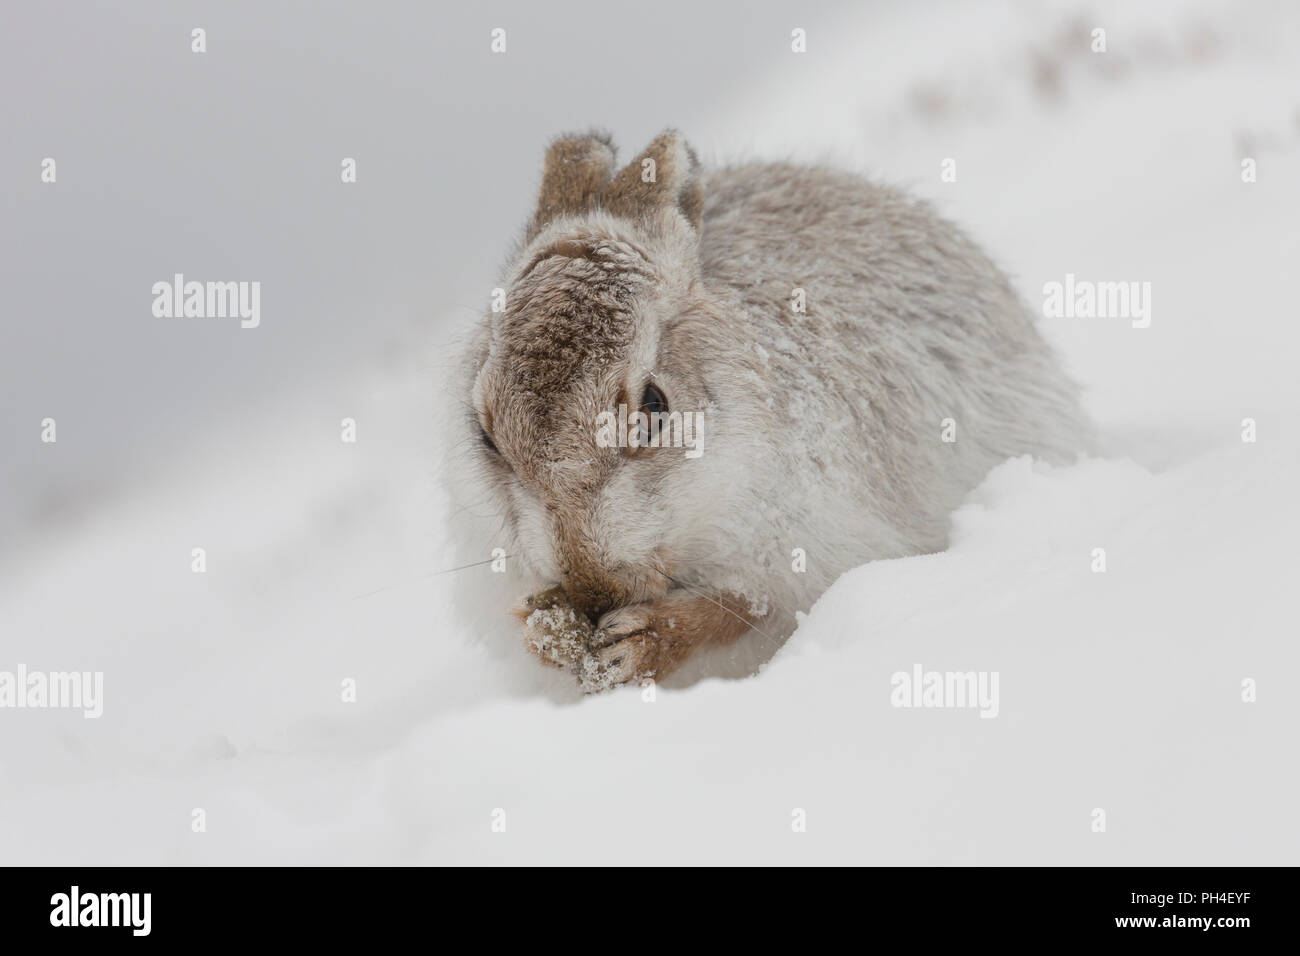 Mountain Hare (Lepus timidus). Adult in white winter coat (pelage) in snow, grooming. Cairngorms National Park, Scotland - Stock Image